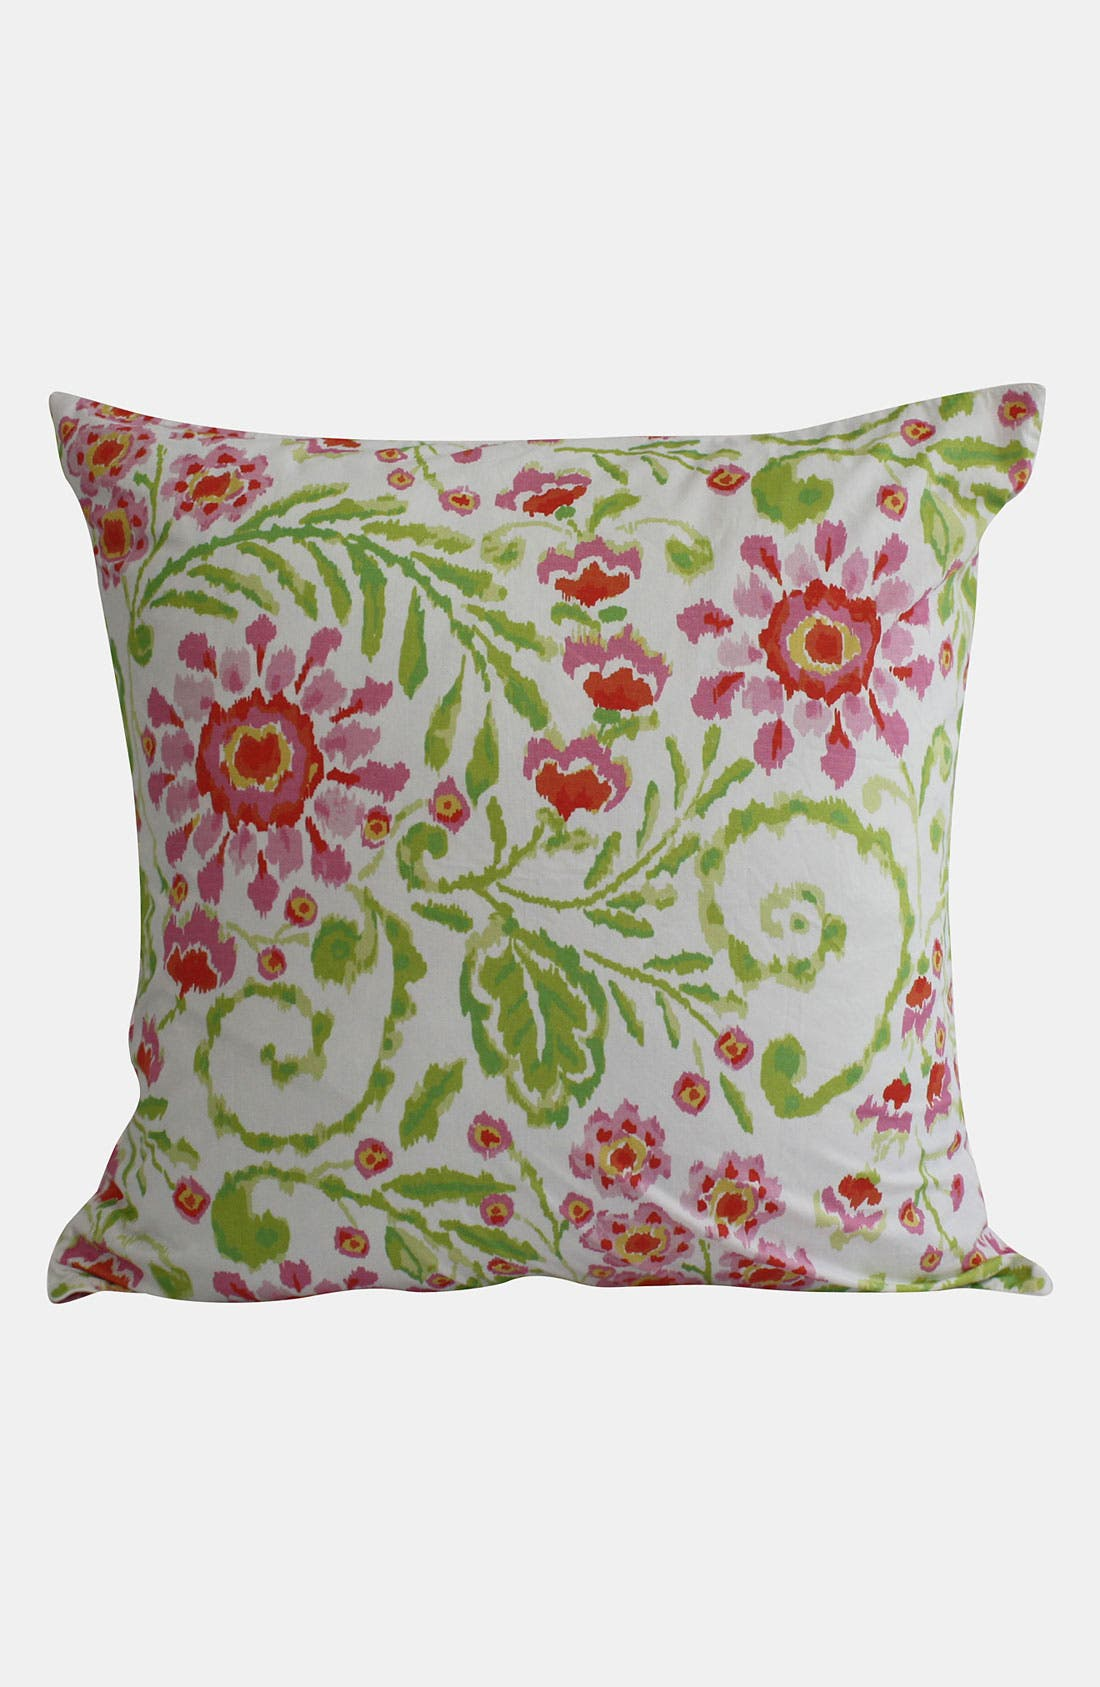 Alternate Image 1 Selected - Dena Home 'Ikat Blossom' Euro Pillow Sham